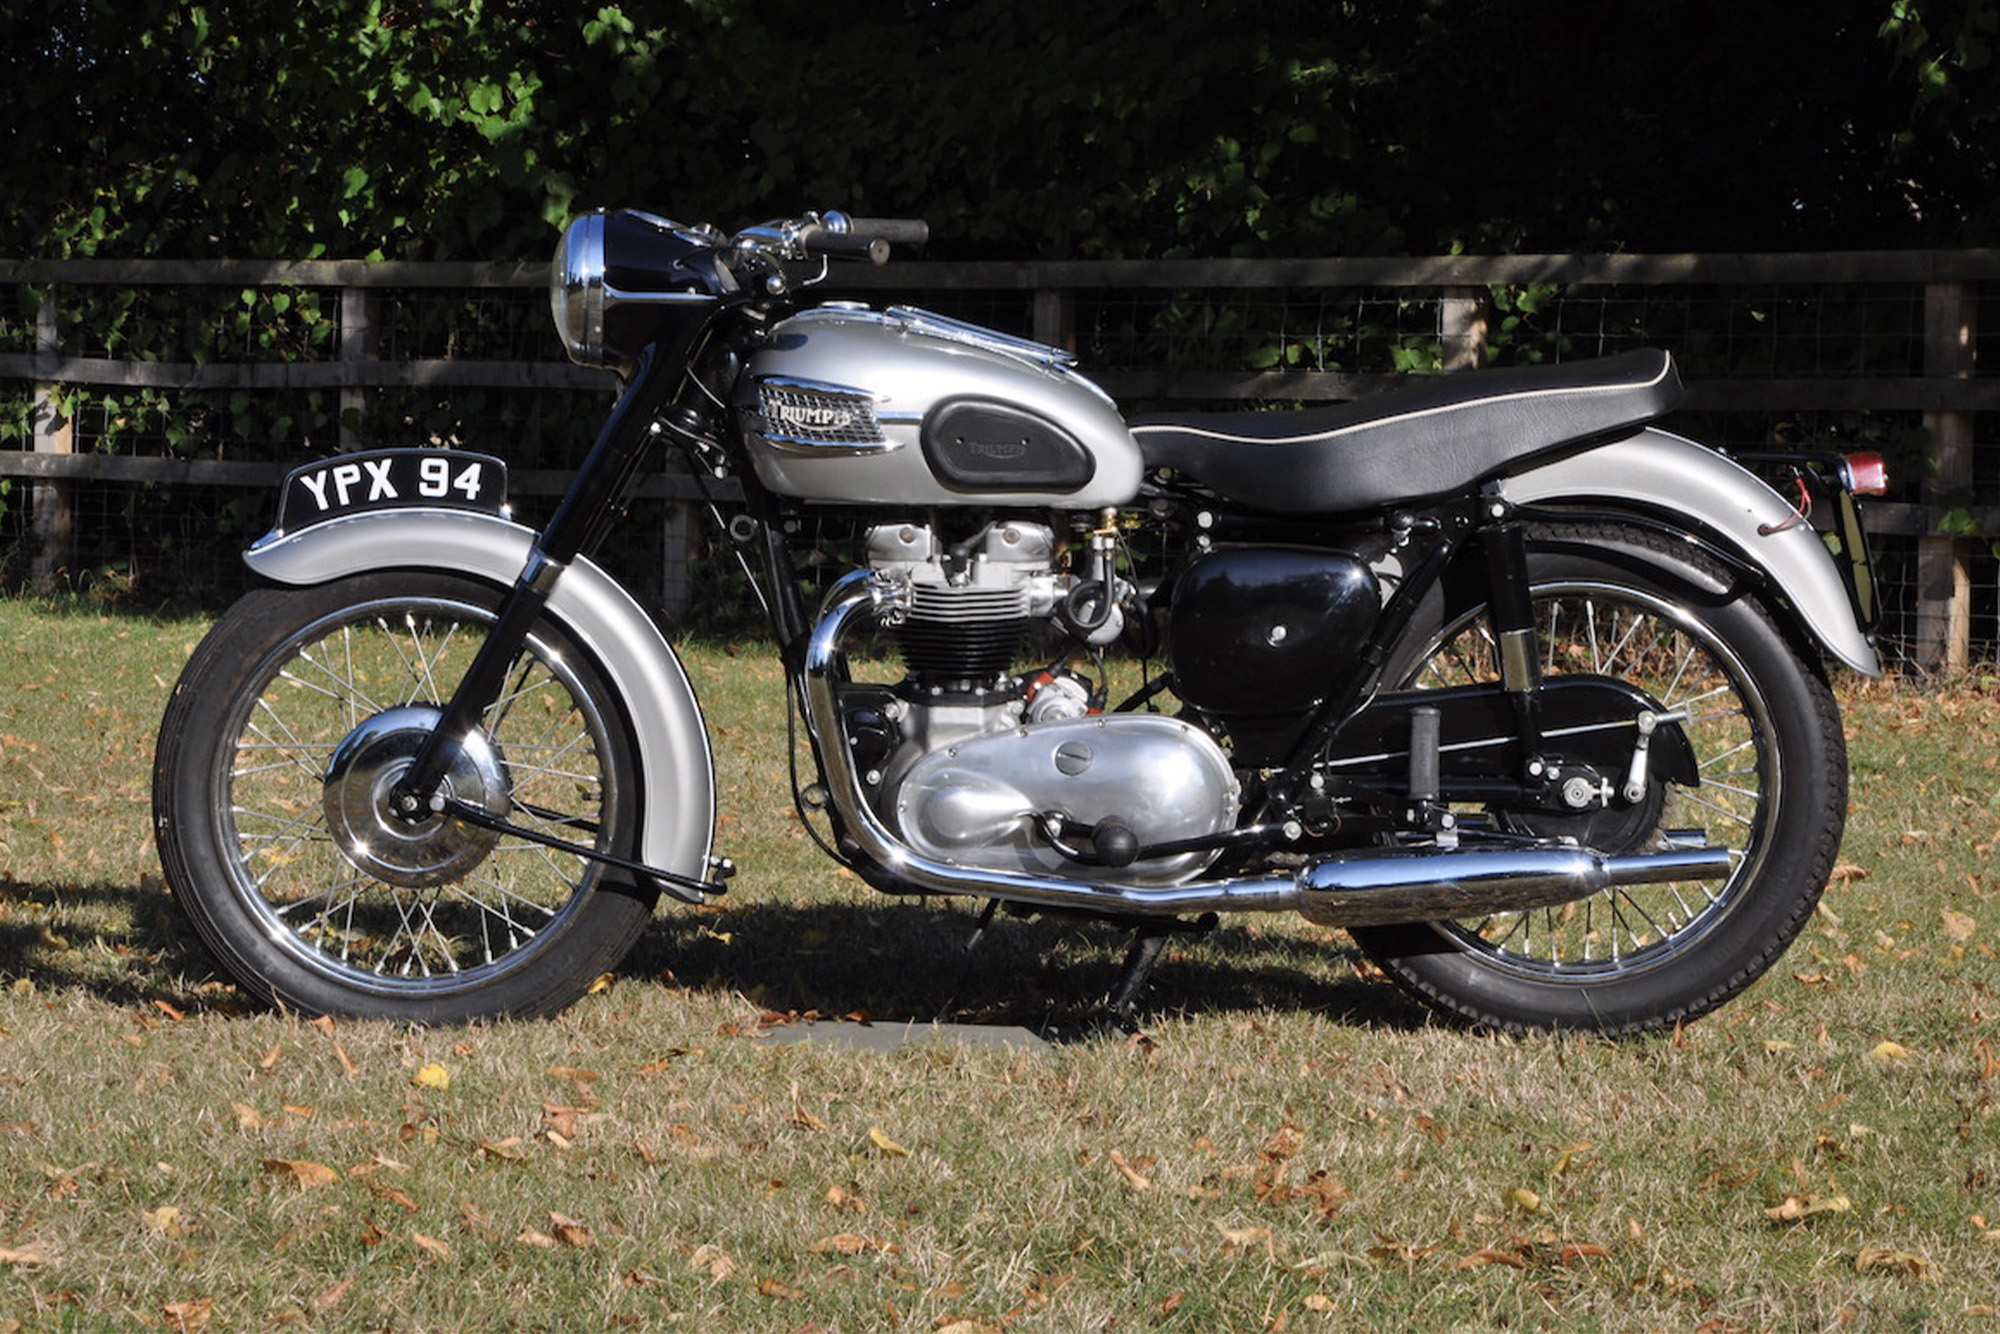 Jenks' Triumph bike up for sale at National Motorcycle Museum